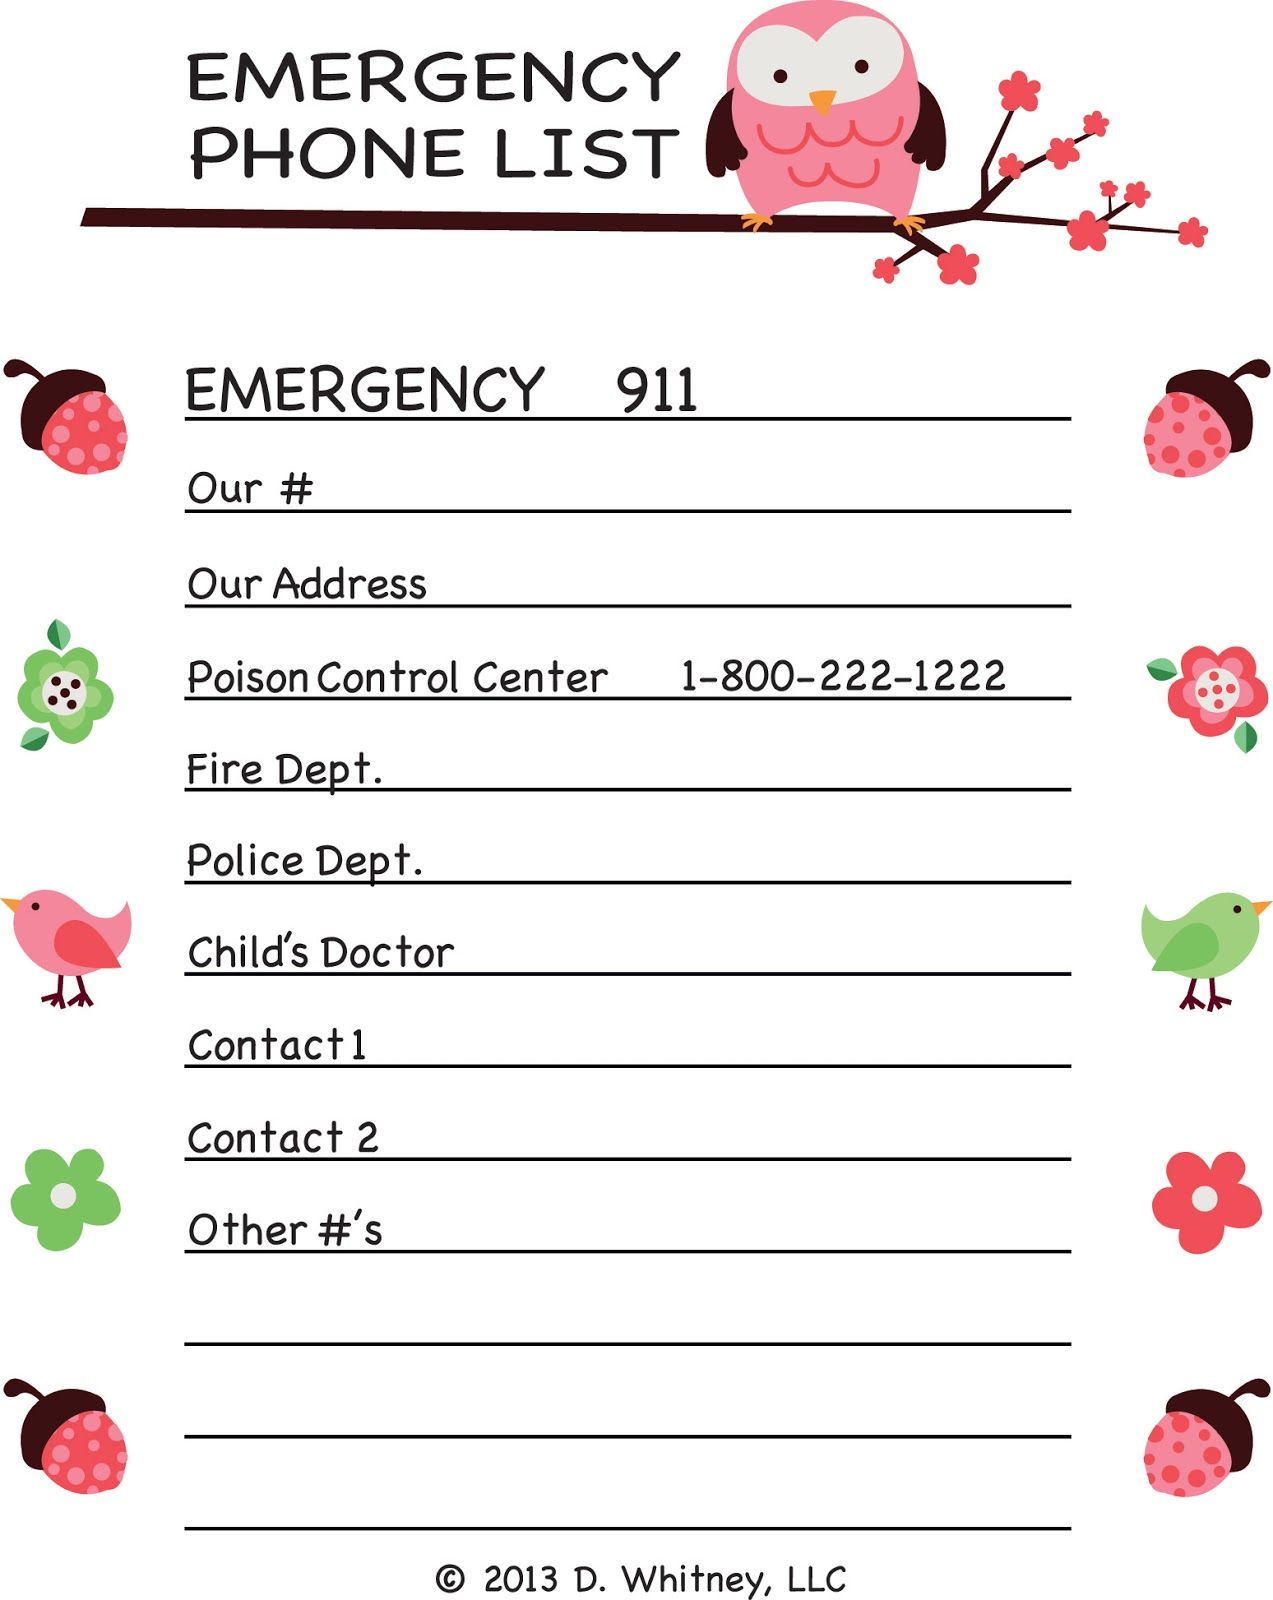 emergency phone list template for kids - Google Search | Cub ...